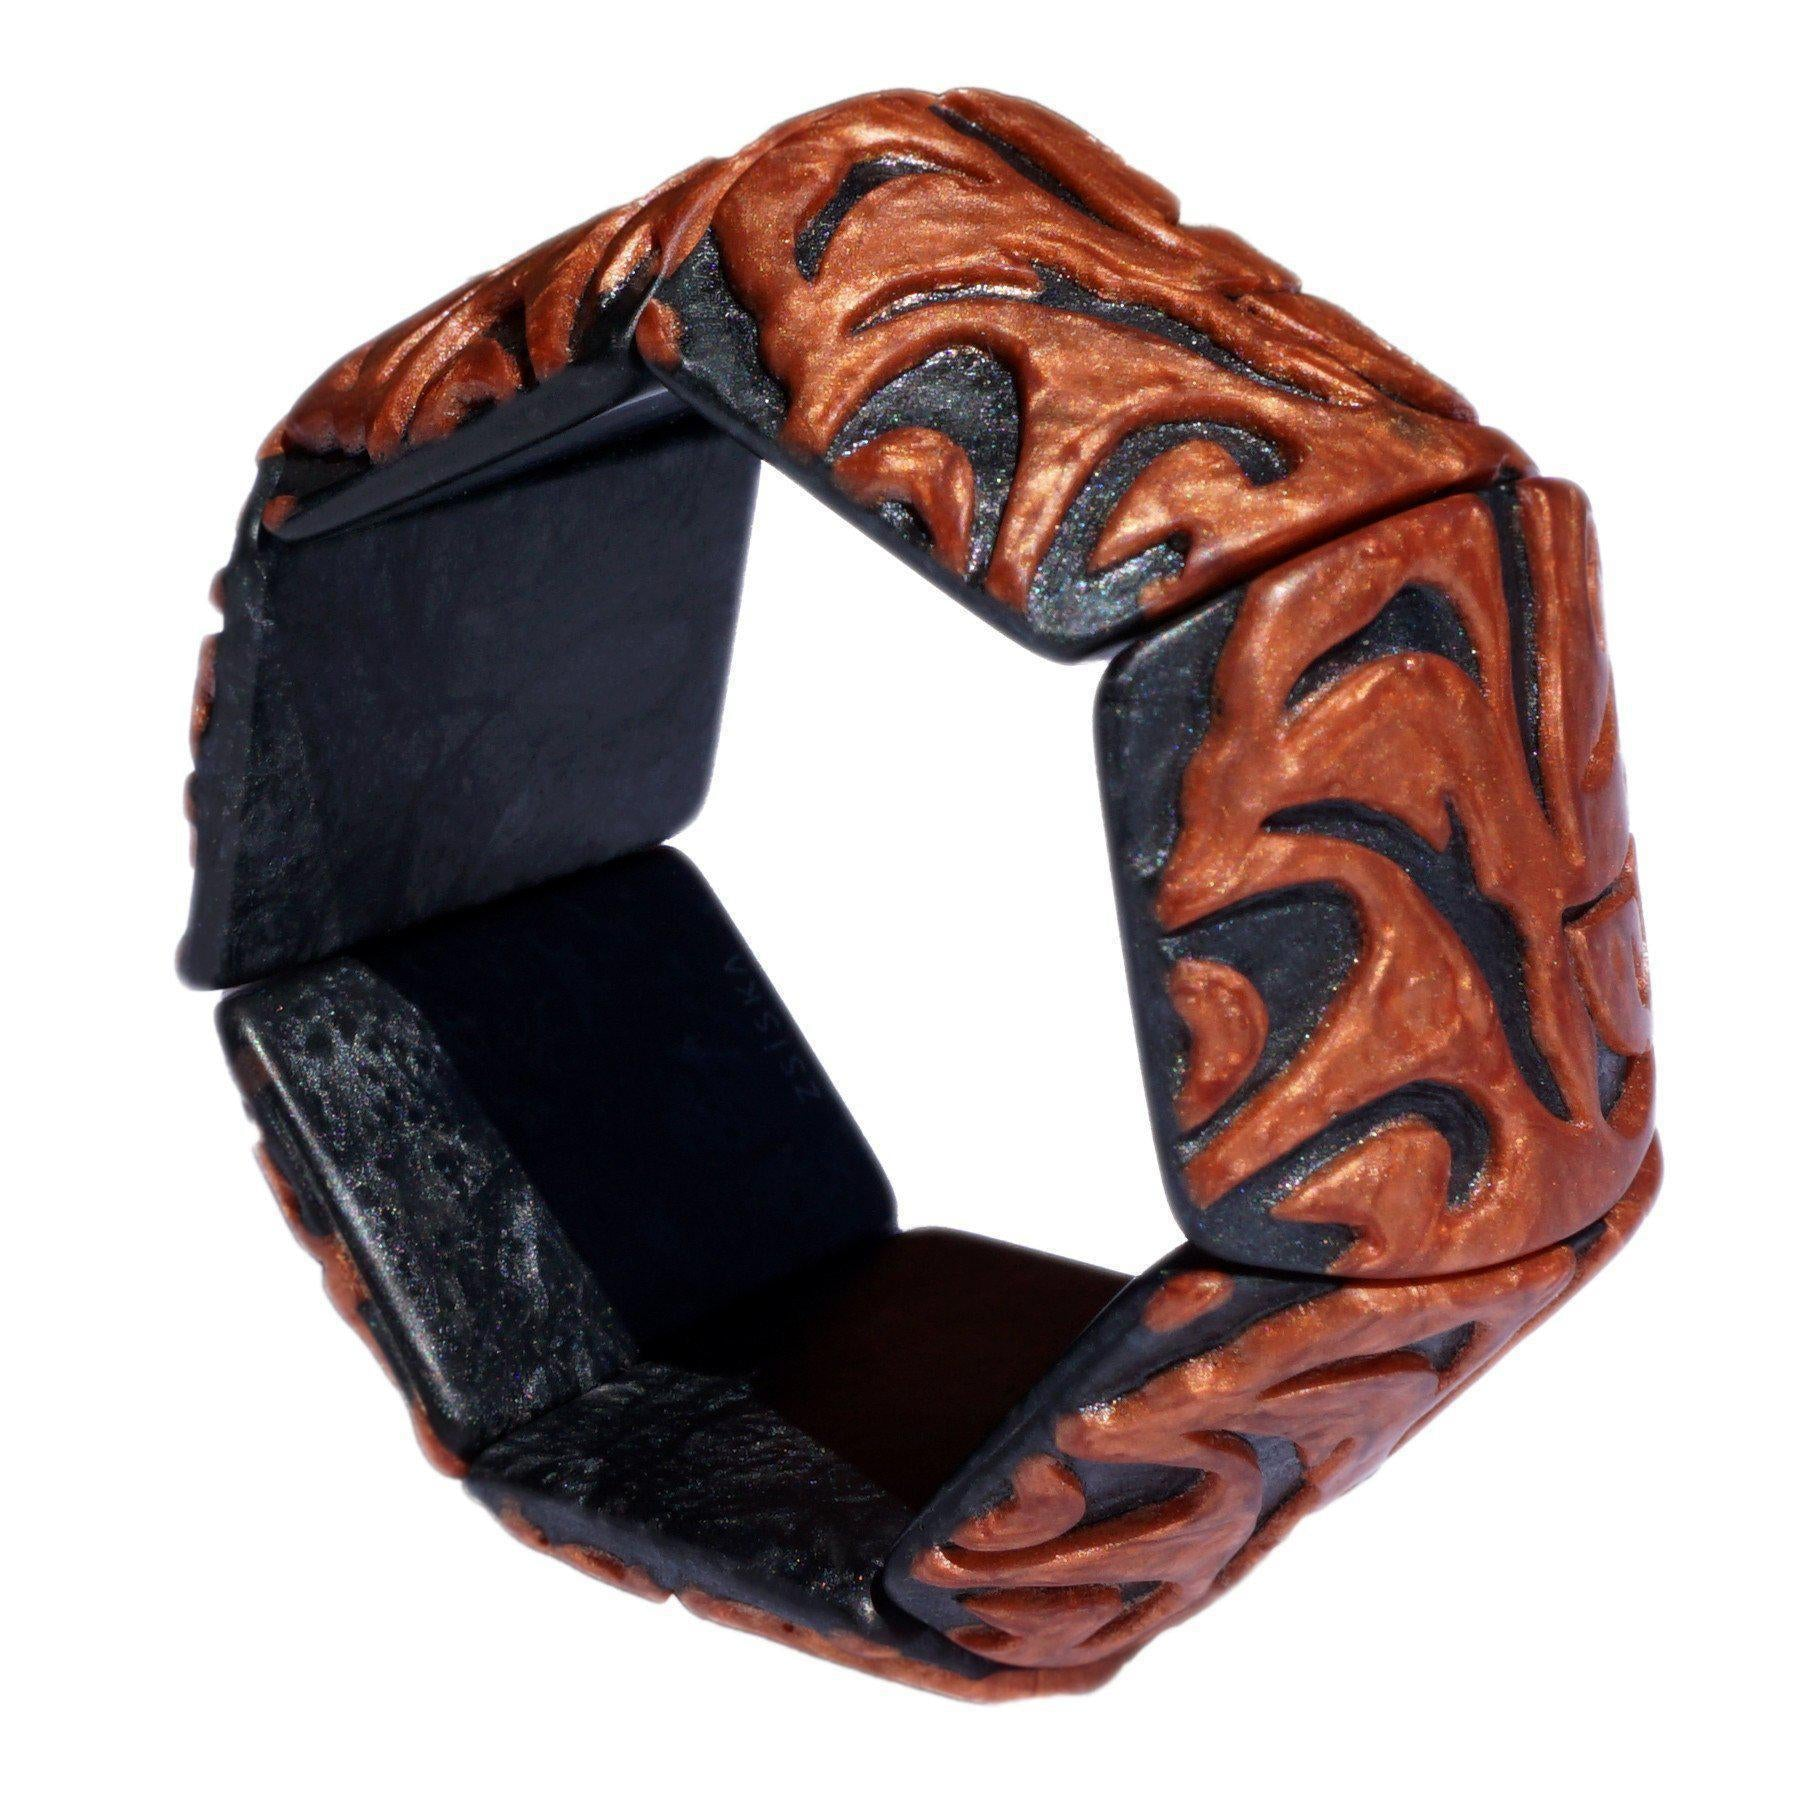 Zsiska Damasco Bangle-Jewellery-Zsiska-Orange-Medium-Temples and Markets